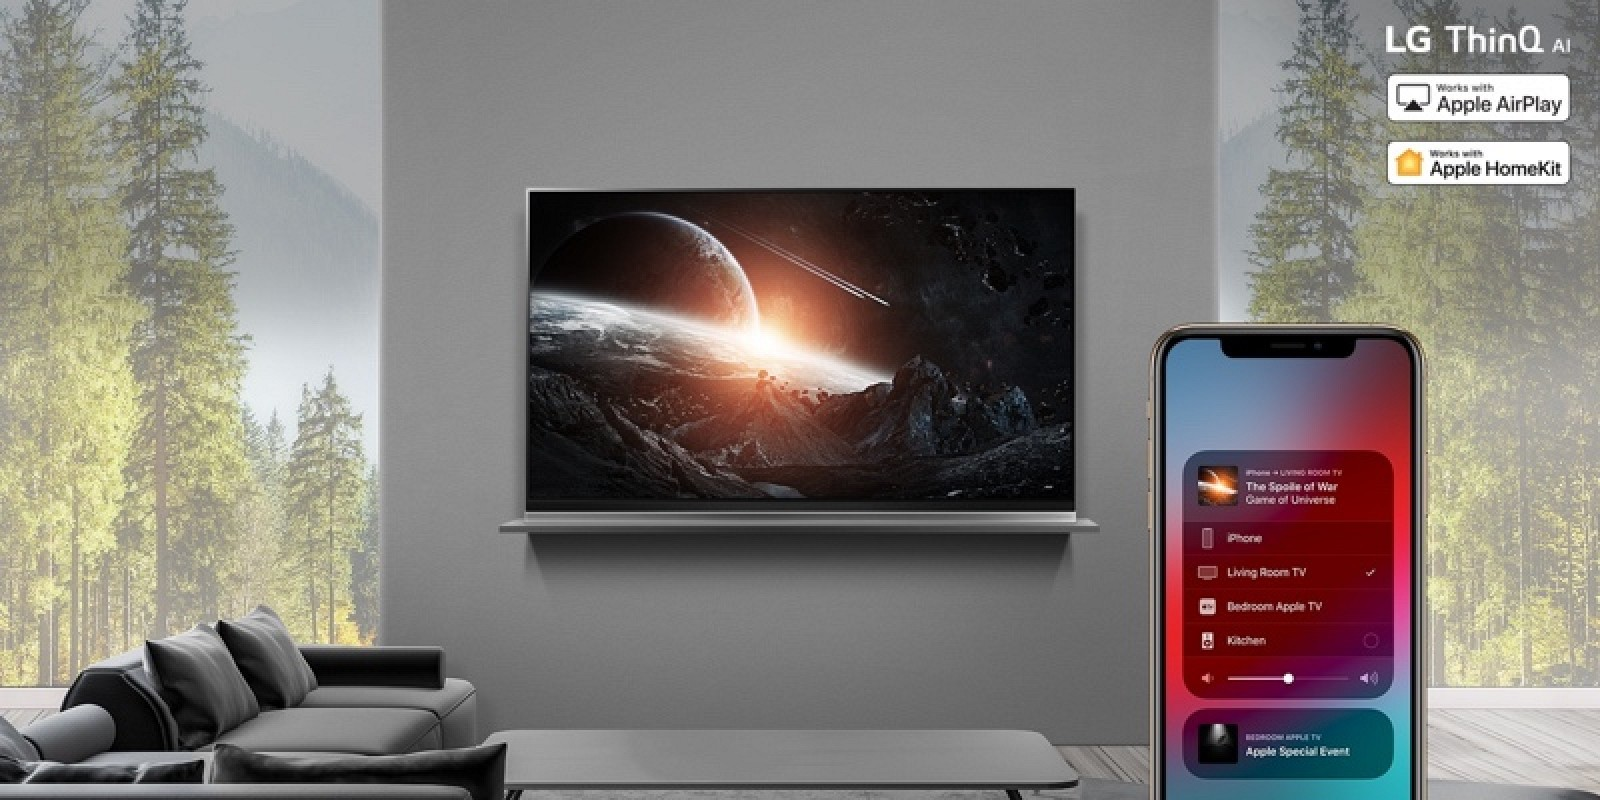 HomeKit and AirPlay 2 Rolling Out to 2019 LG ThinQ TVs Starting